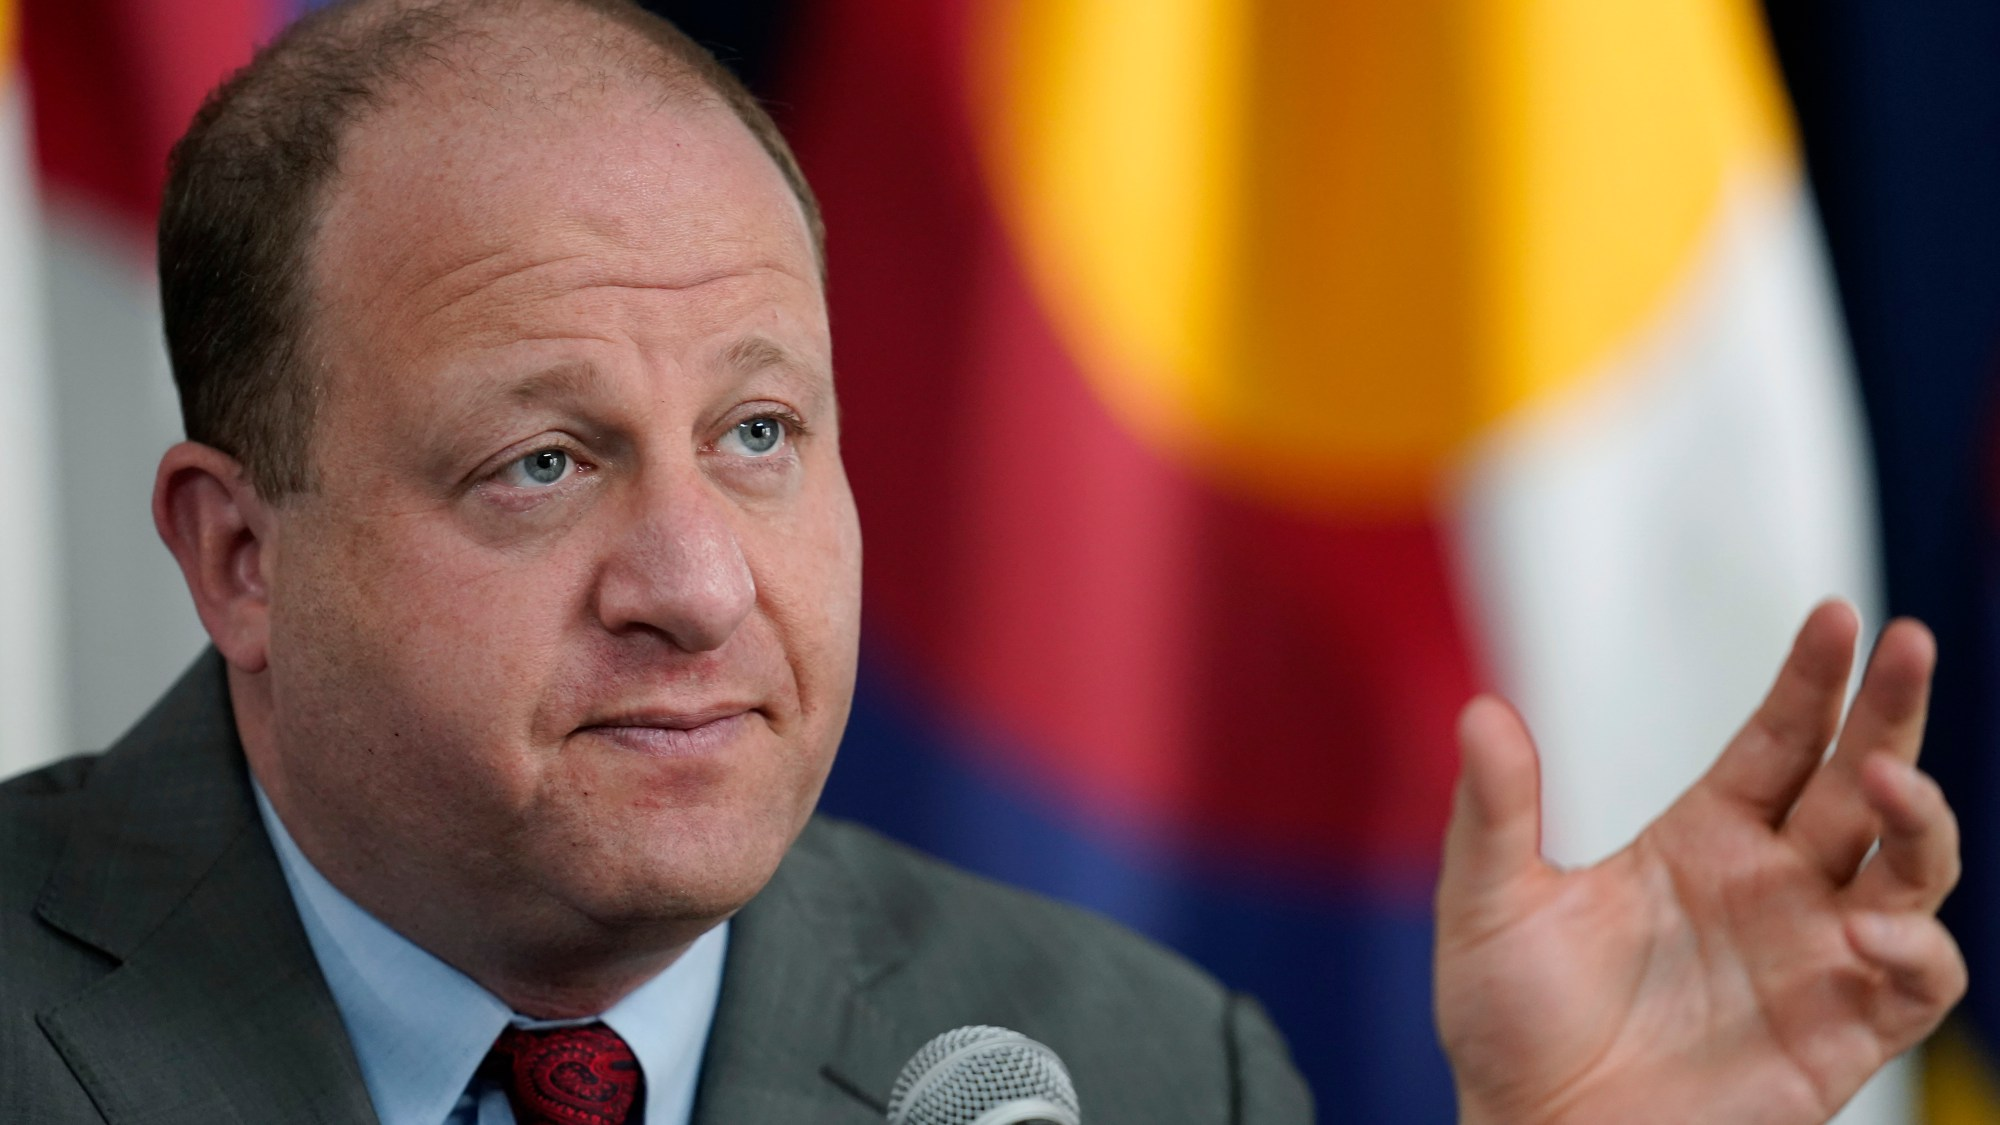 FILE - In this March 9, 2021, file photo, Colorado Governor Jared Polis makes a point during a news conference in Denver. (AP Photo/David Zalubowski, File)